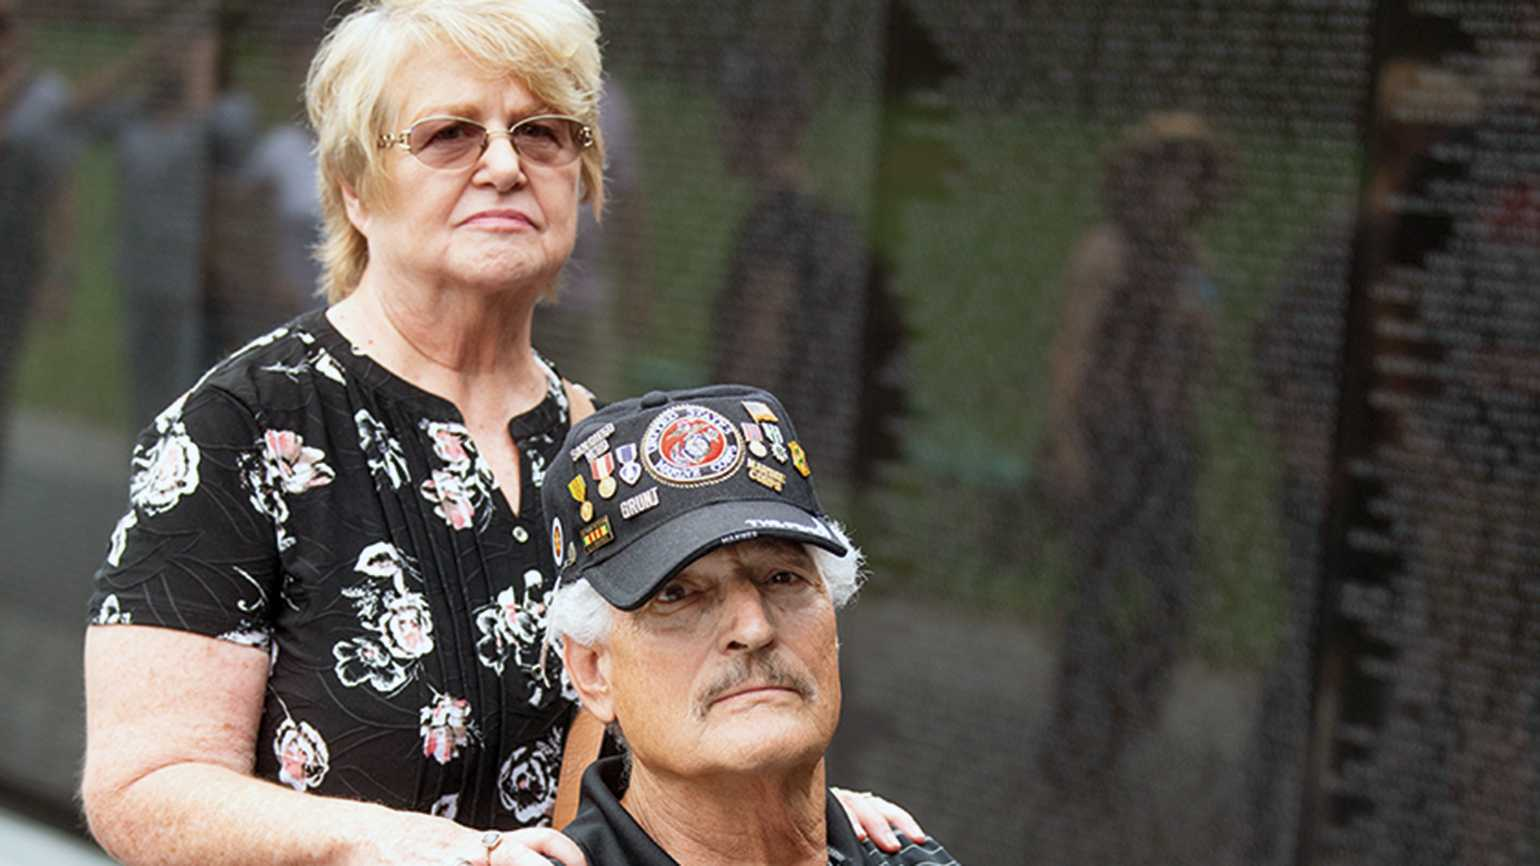 Eddie and his wife, Connie, on a visit to the Vietnam Veterans Memorial